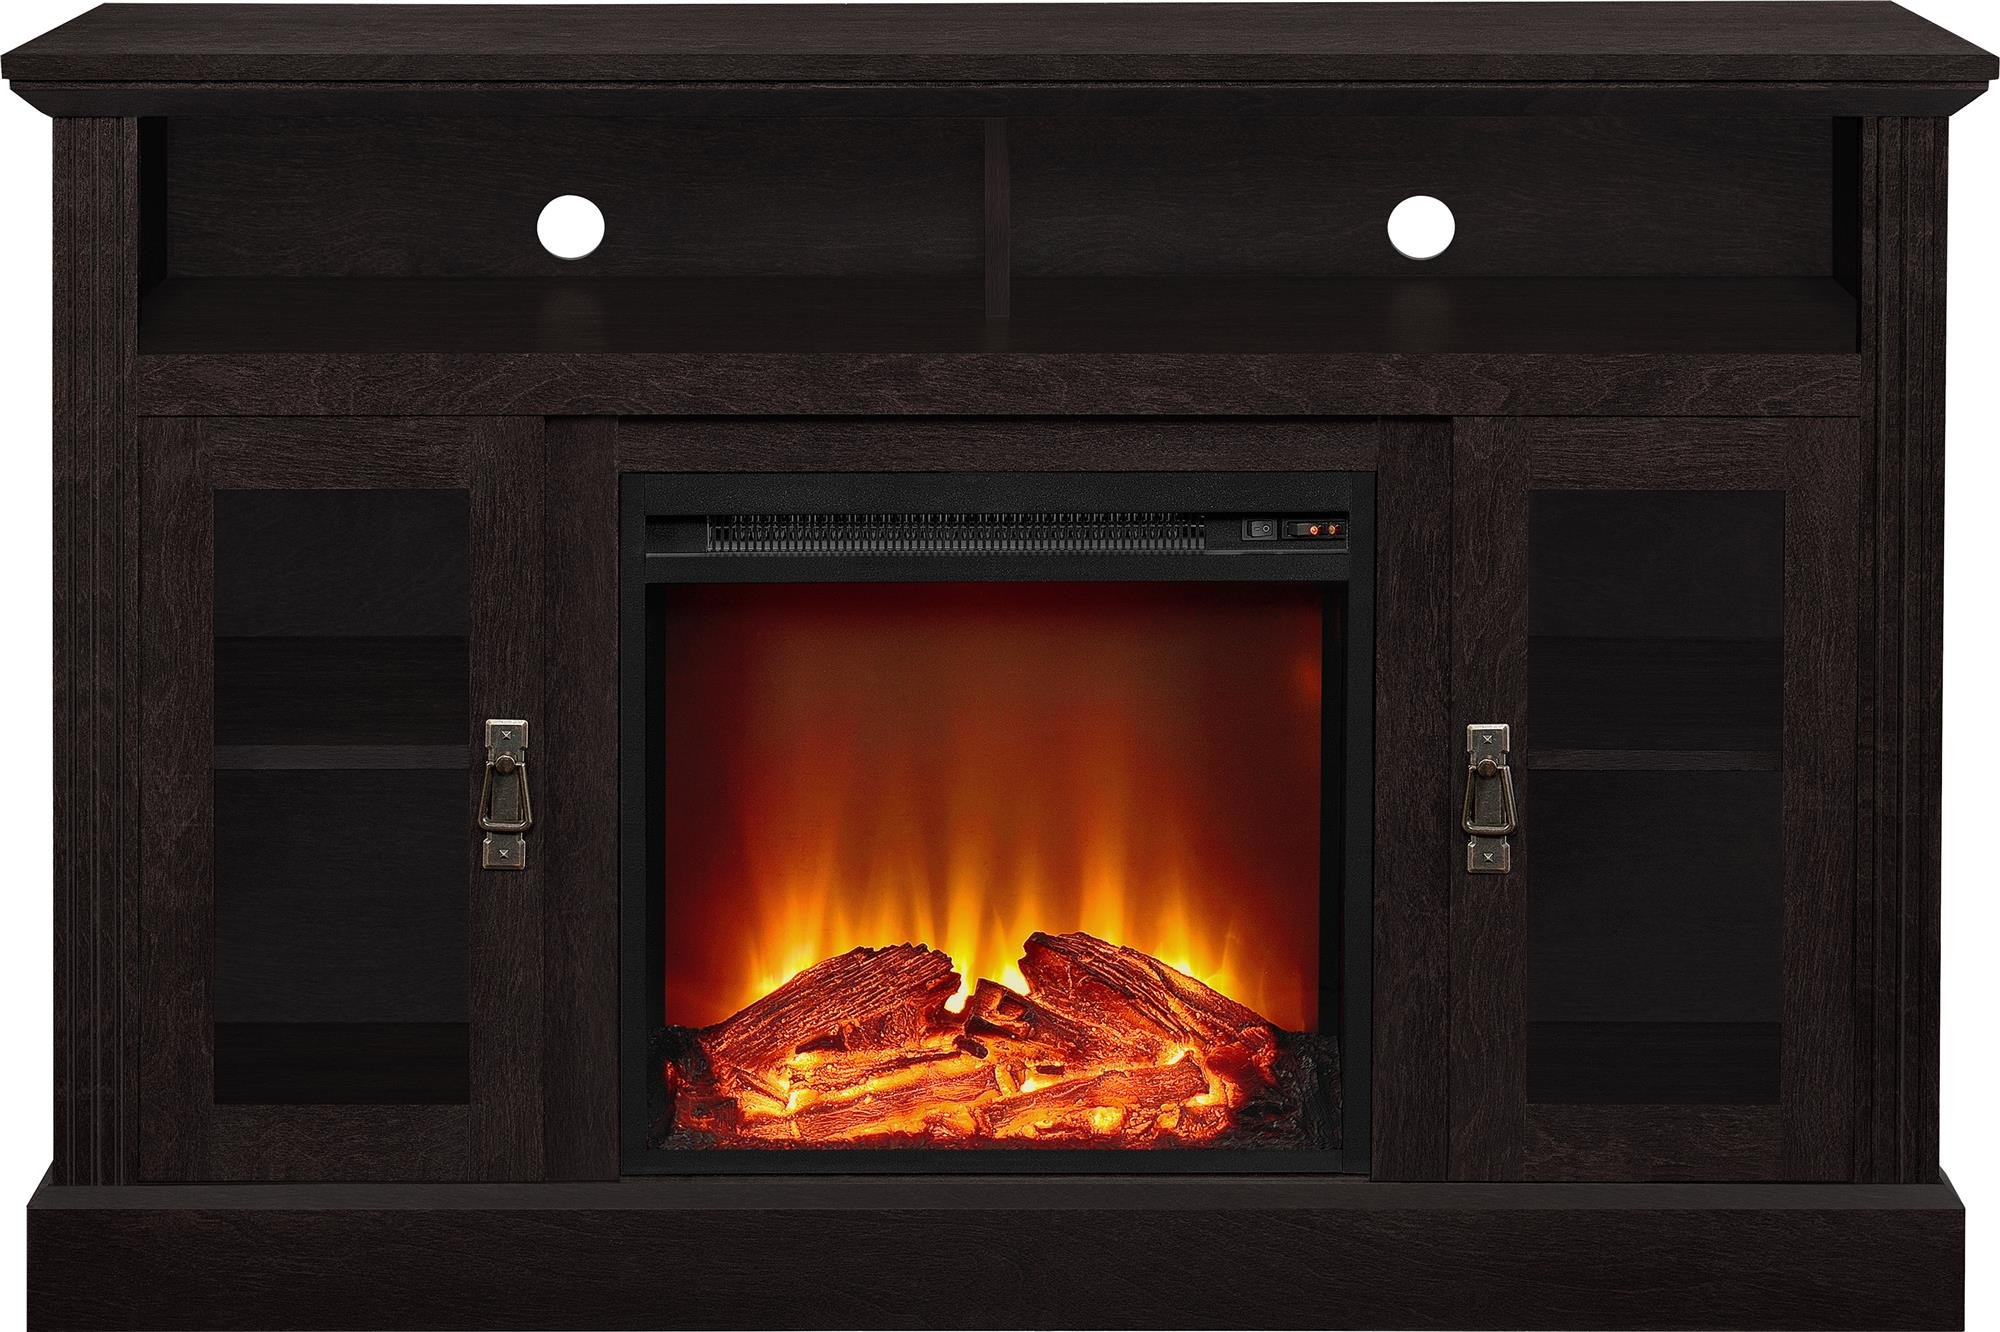 Ameriwood Home Chicago Electric Fireplace TV Console for TVs up to a 50'', Espresso by Ameriwood Home (Image #5)